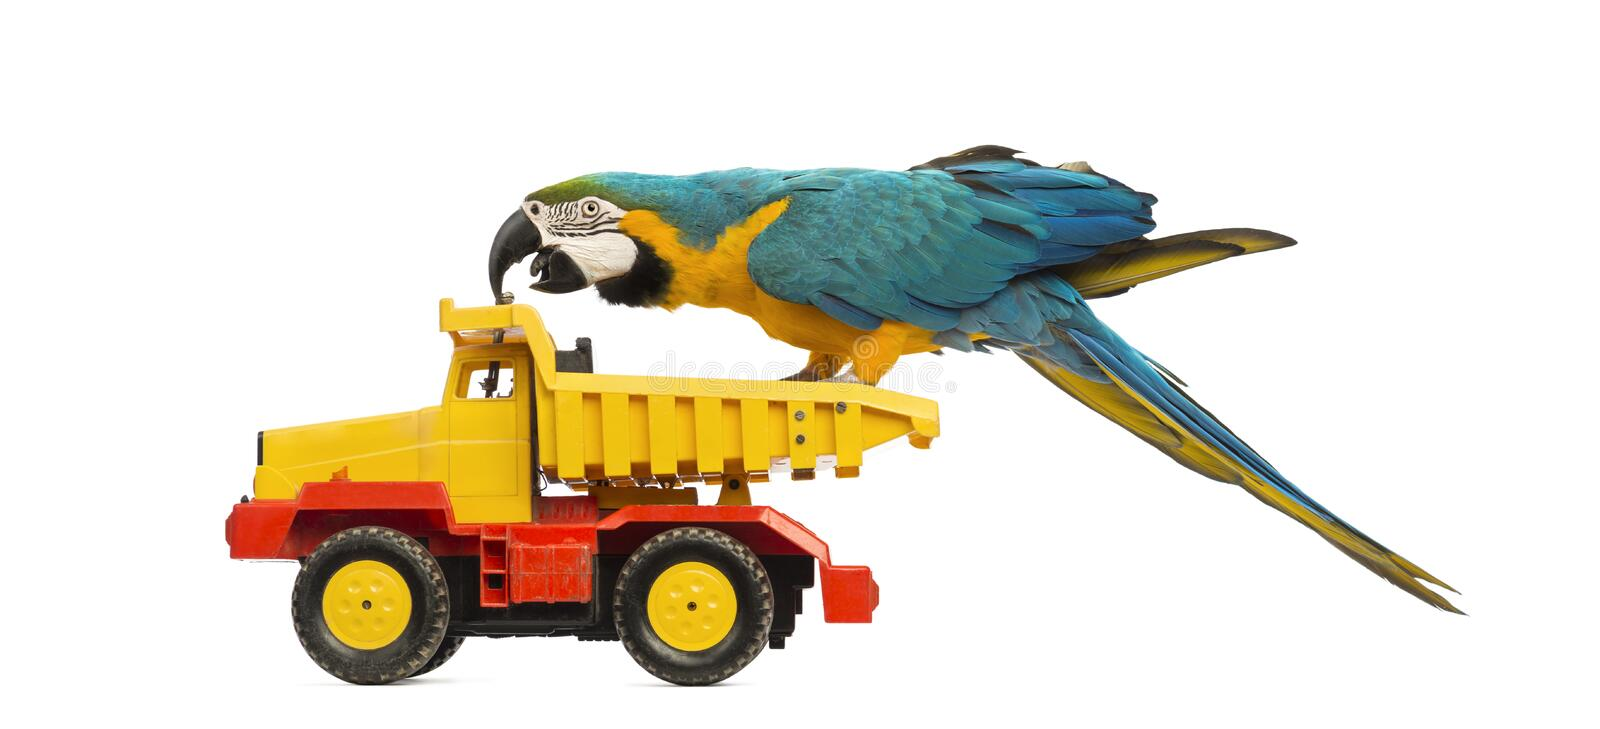 Blue-and-yellow Macaw, Ara Ararauna, 30 Years Old, Riding A Truck, Lorry Stock Photo